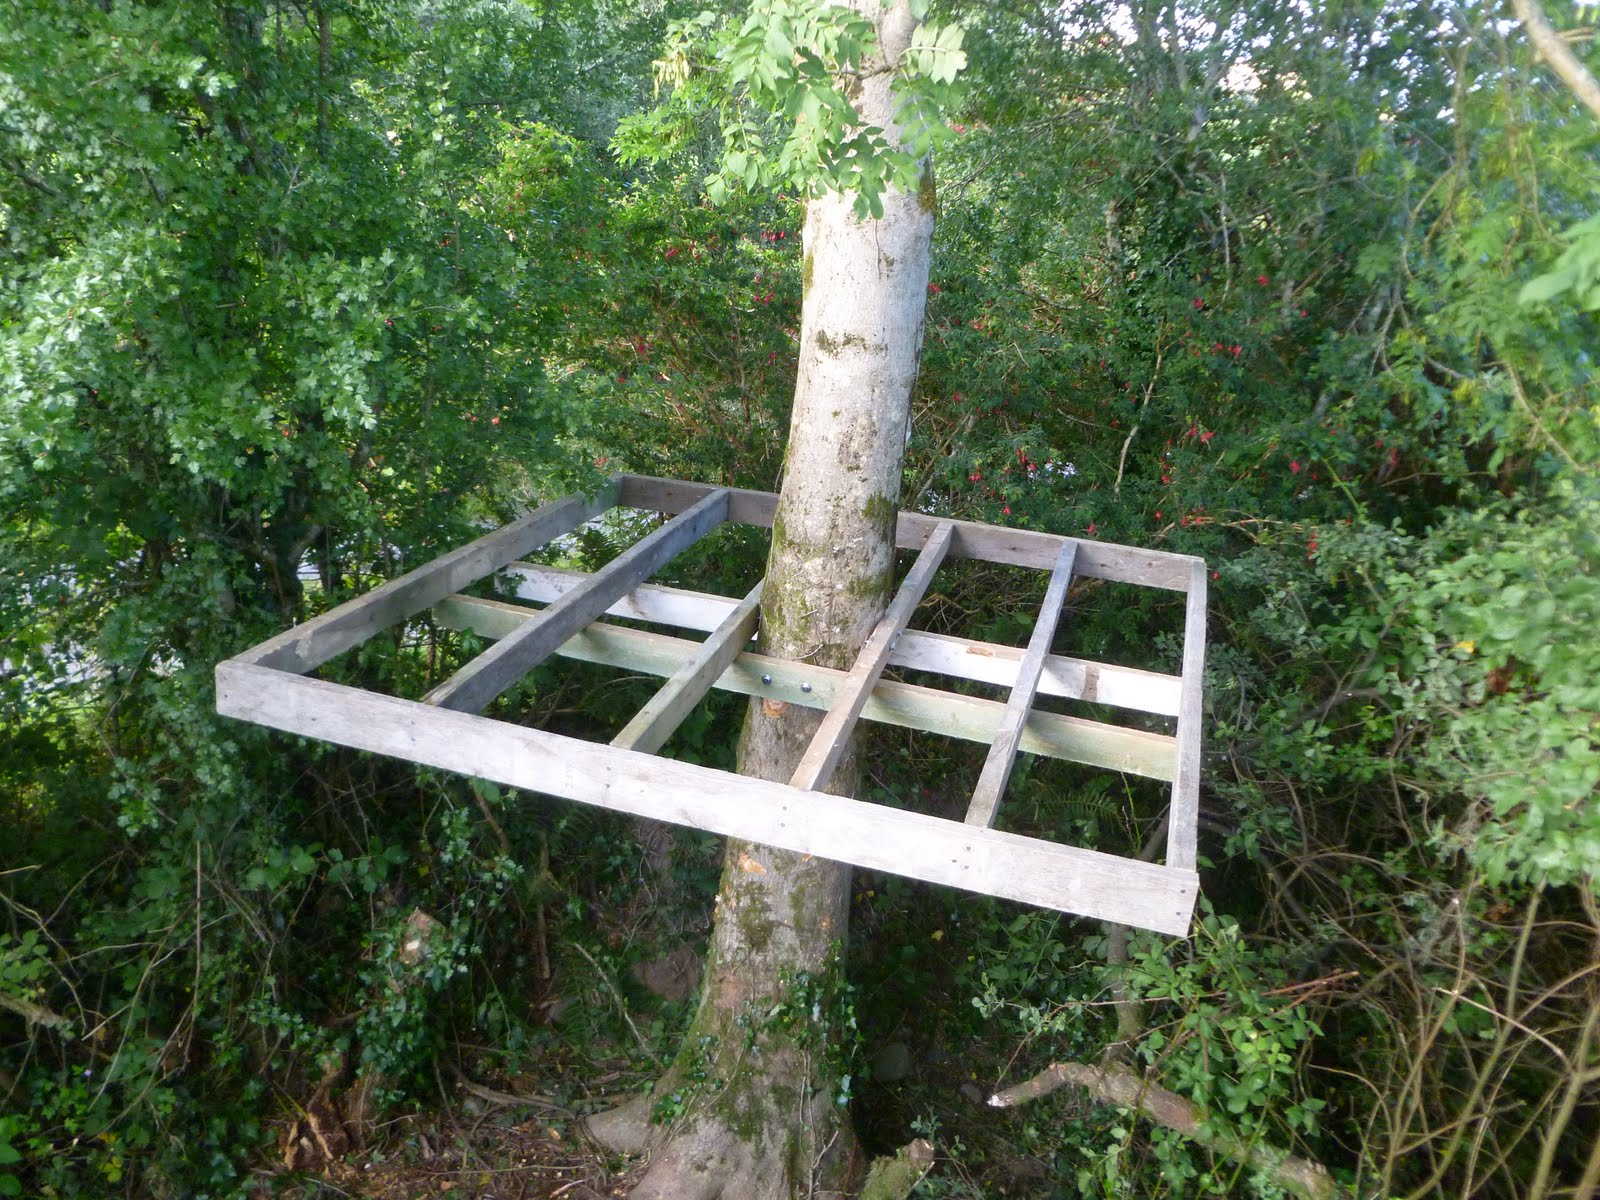 Anyone have experience in building a tree house?